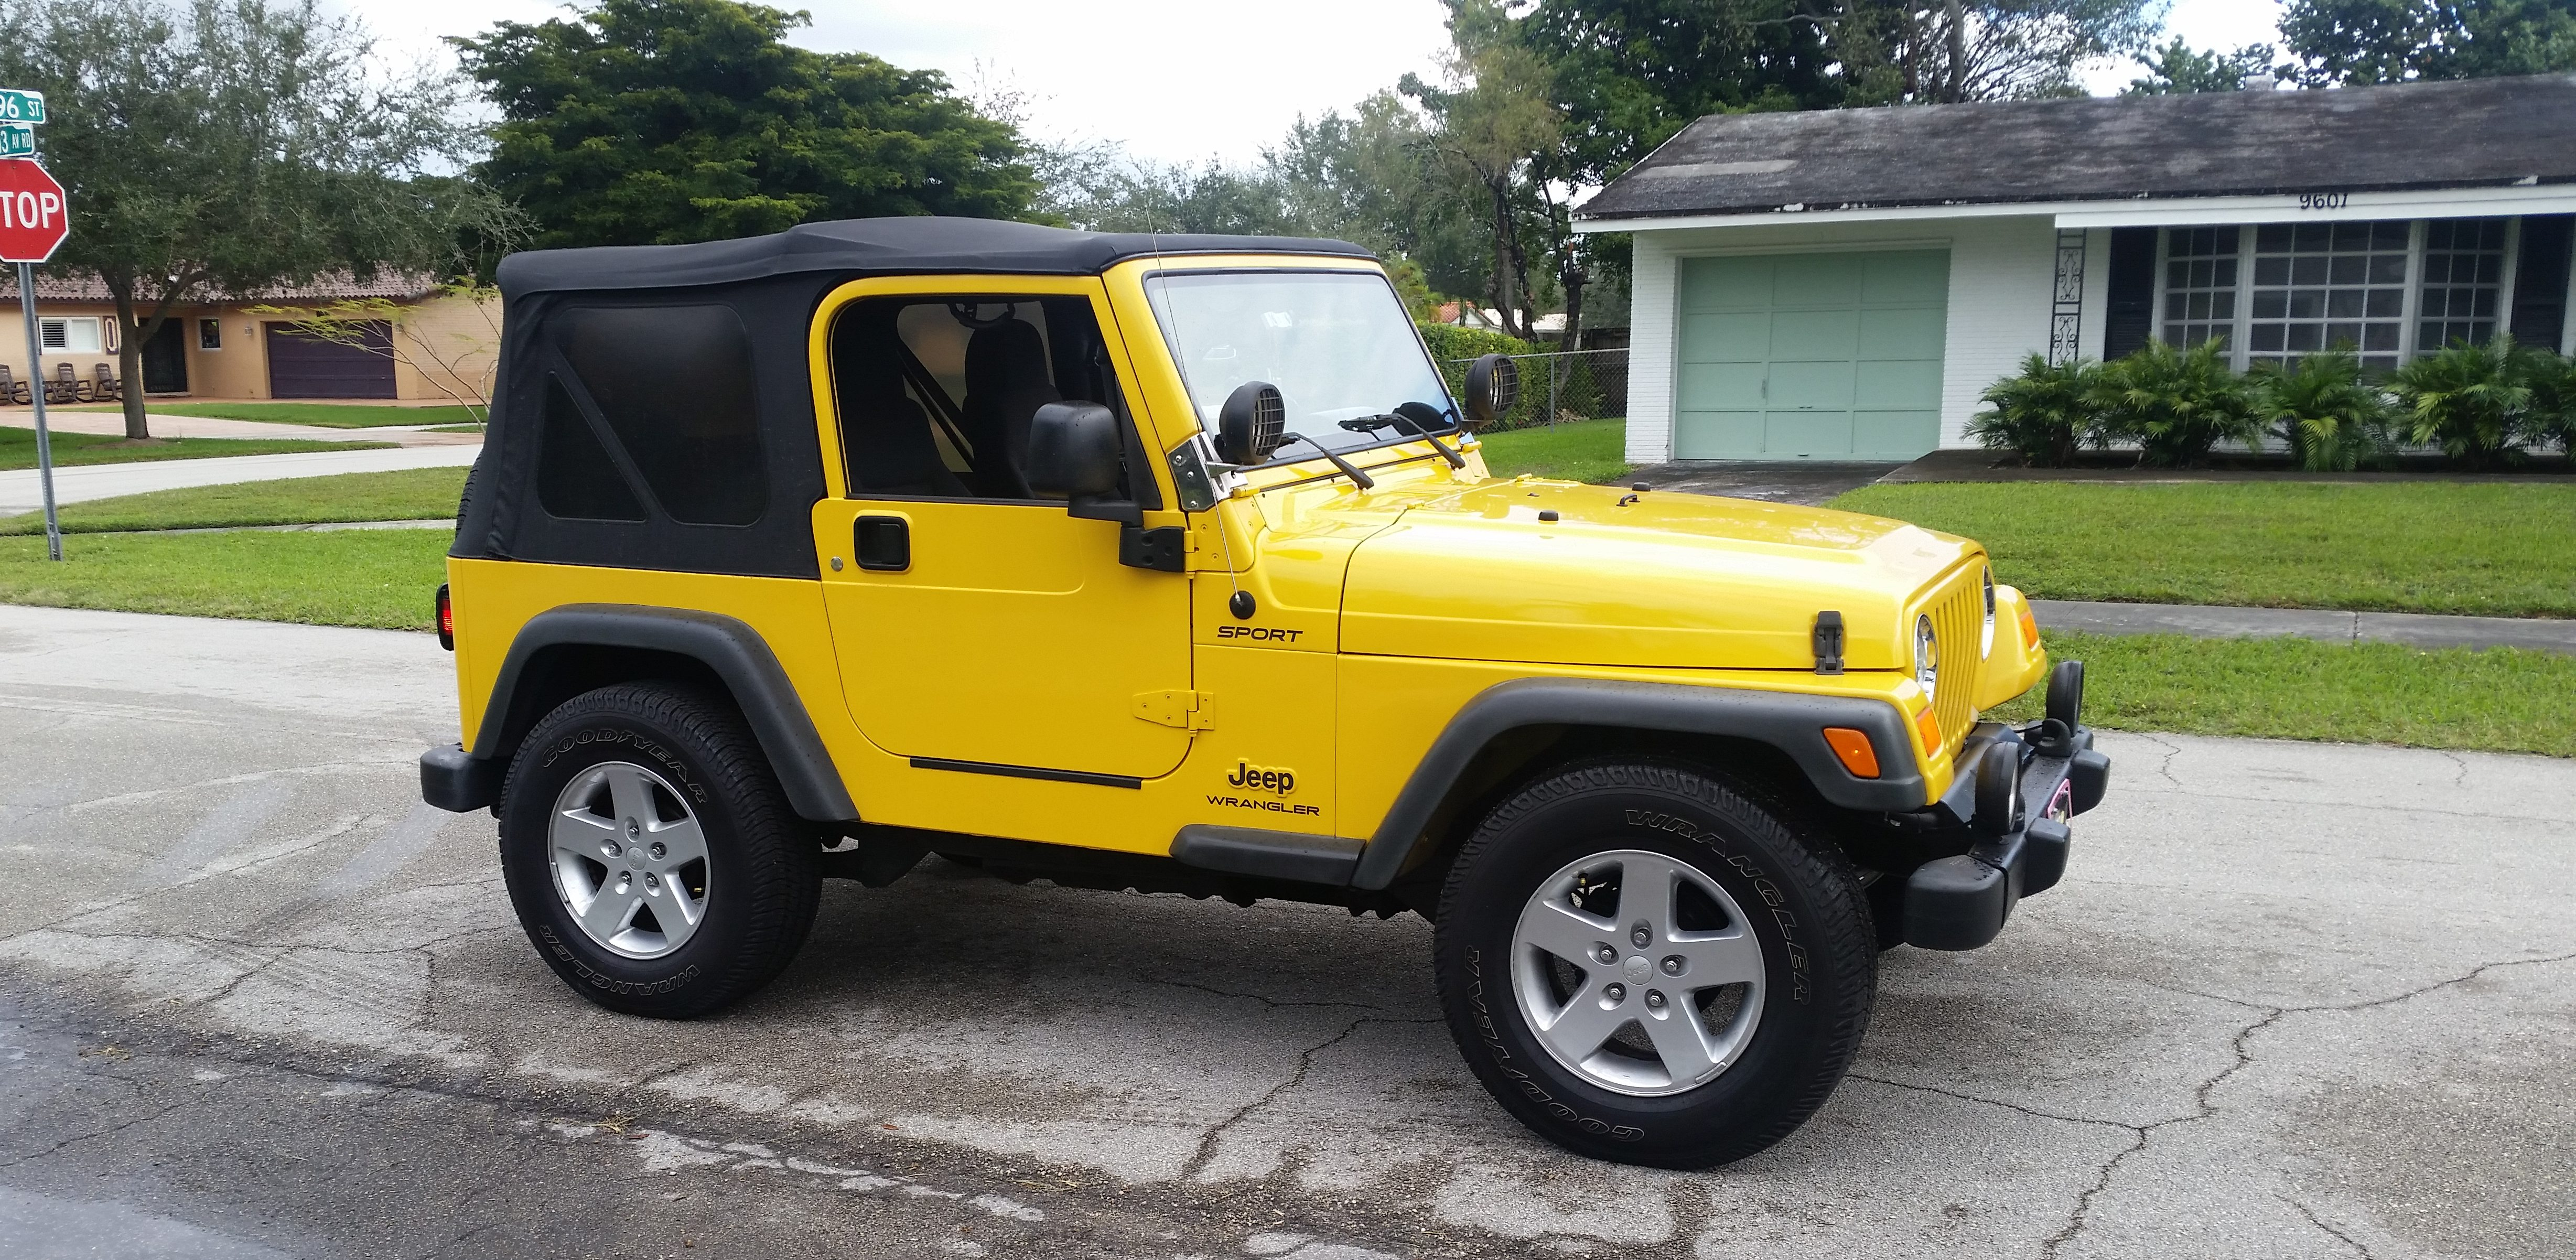 hight resolution of jeep hardtop wiring harness removal jeep comanche pickup jeep fan jeep jk hardtop dimensions jeep